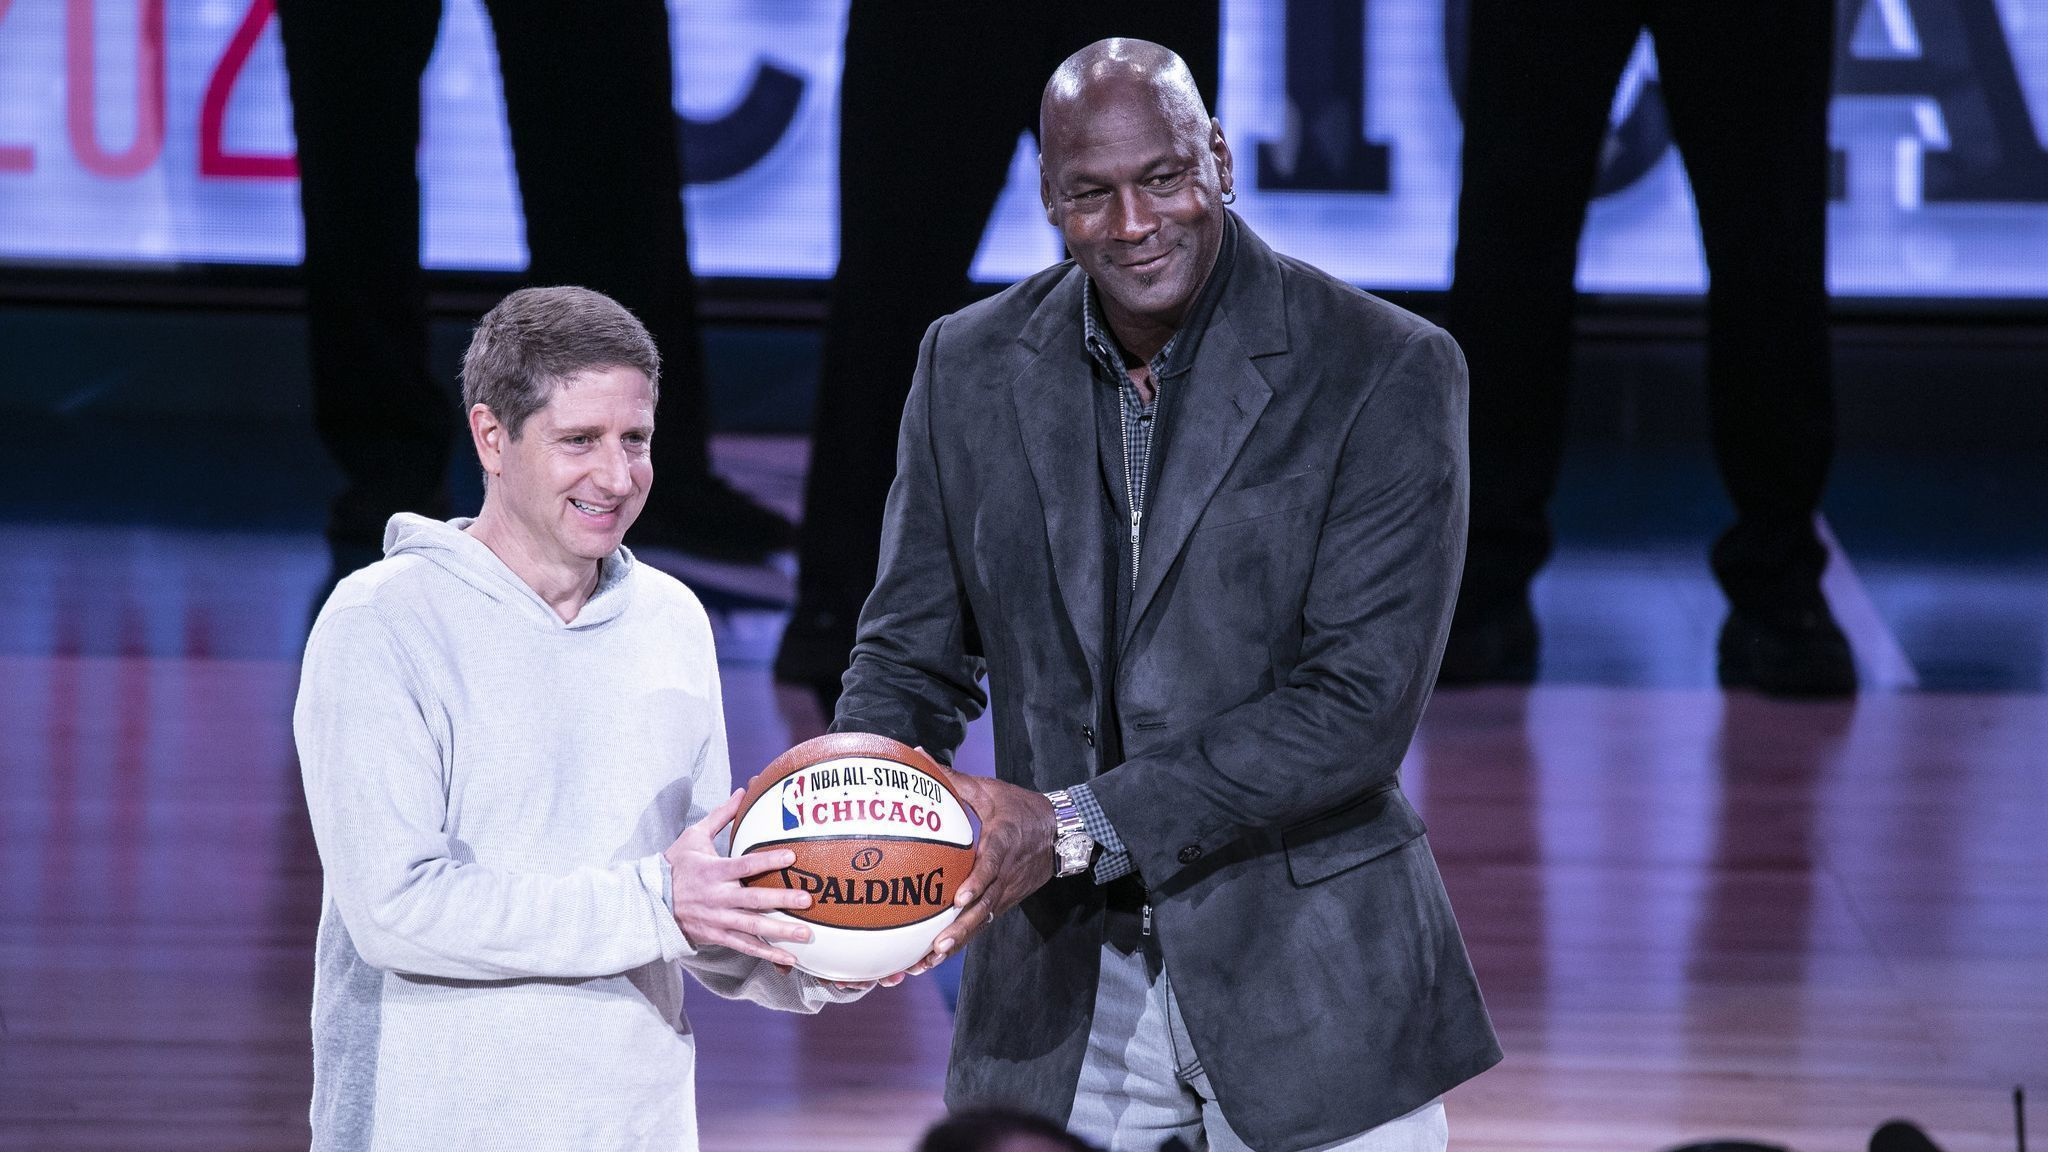 df7f9568eef346 The Bulls are on the clock as hosts of the 2020 NBA All-Star Game   Let s  just hope there s not a polar vortex . Michael Jordan and Michael Reinsdorf